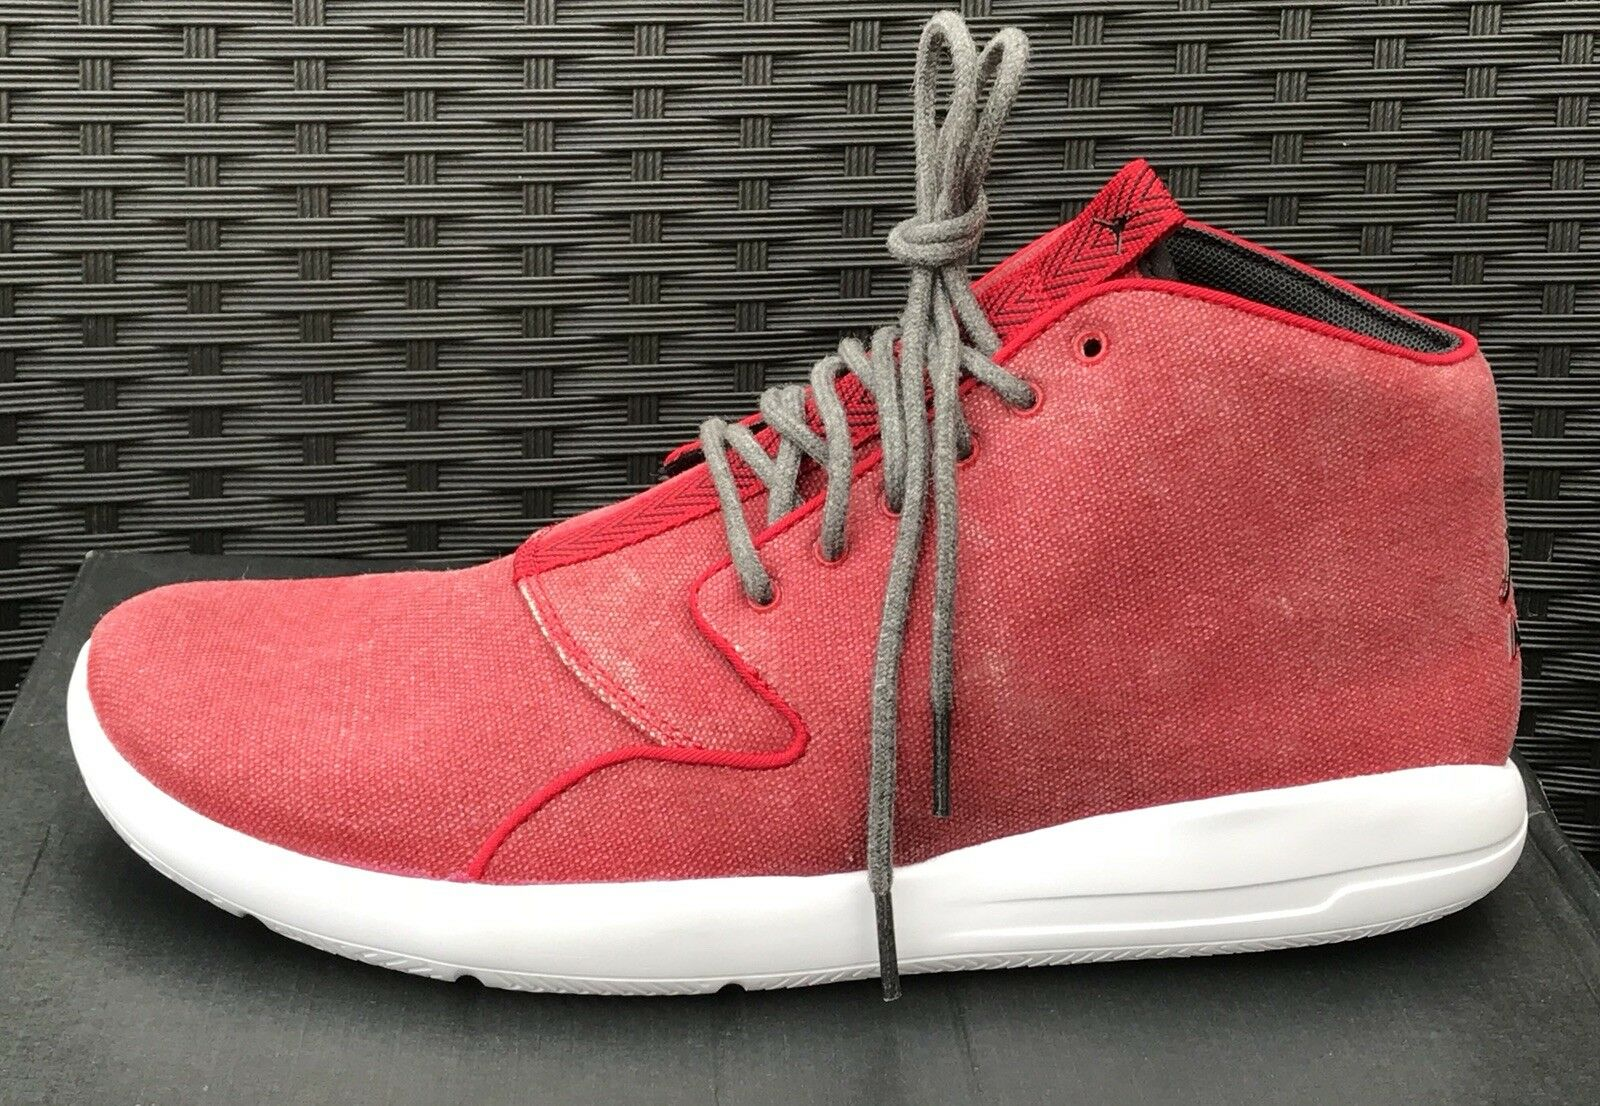 Nike Air Jordan Eclipse Chukka  homme chaussures Sneakers Sneakers chaussures Uk9.5Eur44.5New With Box cef53c